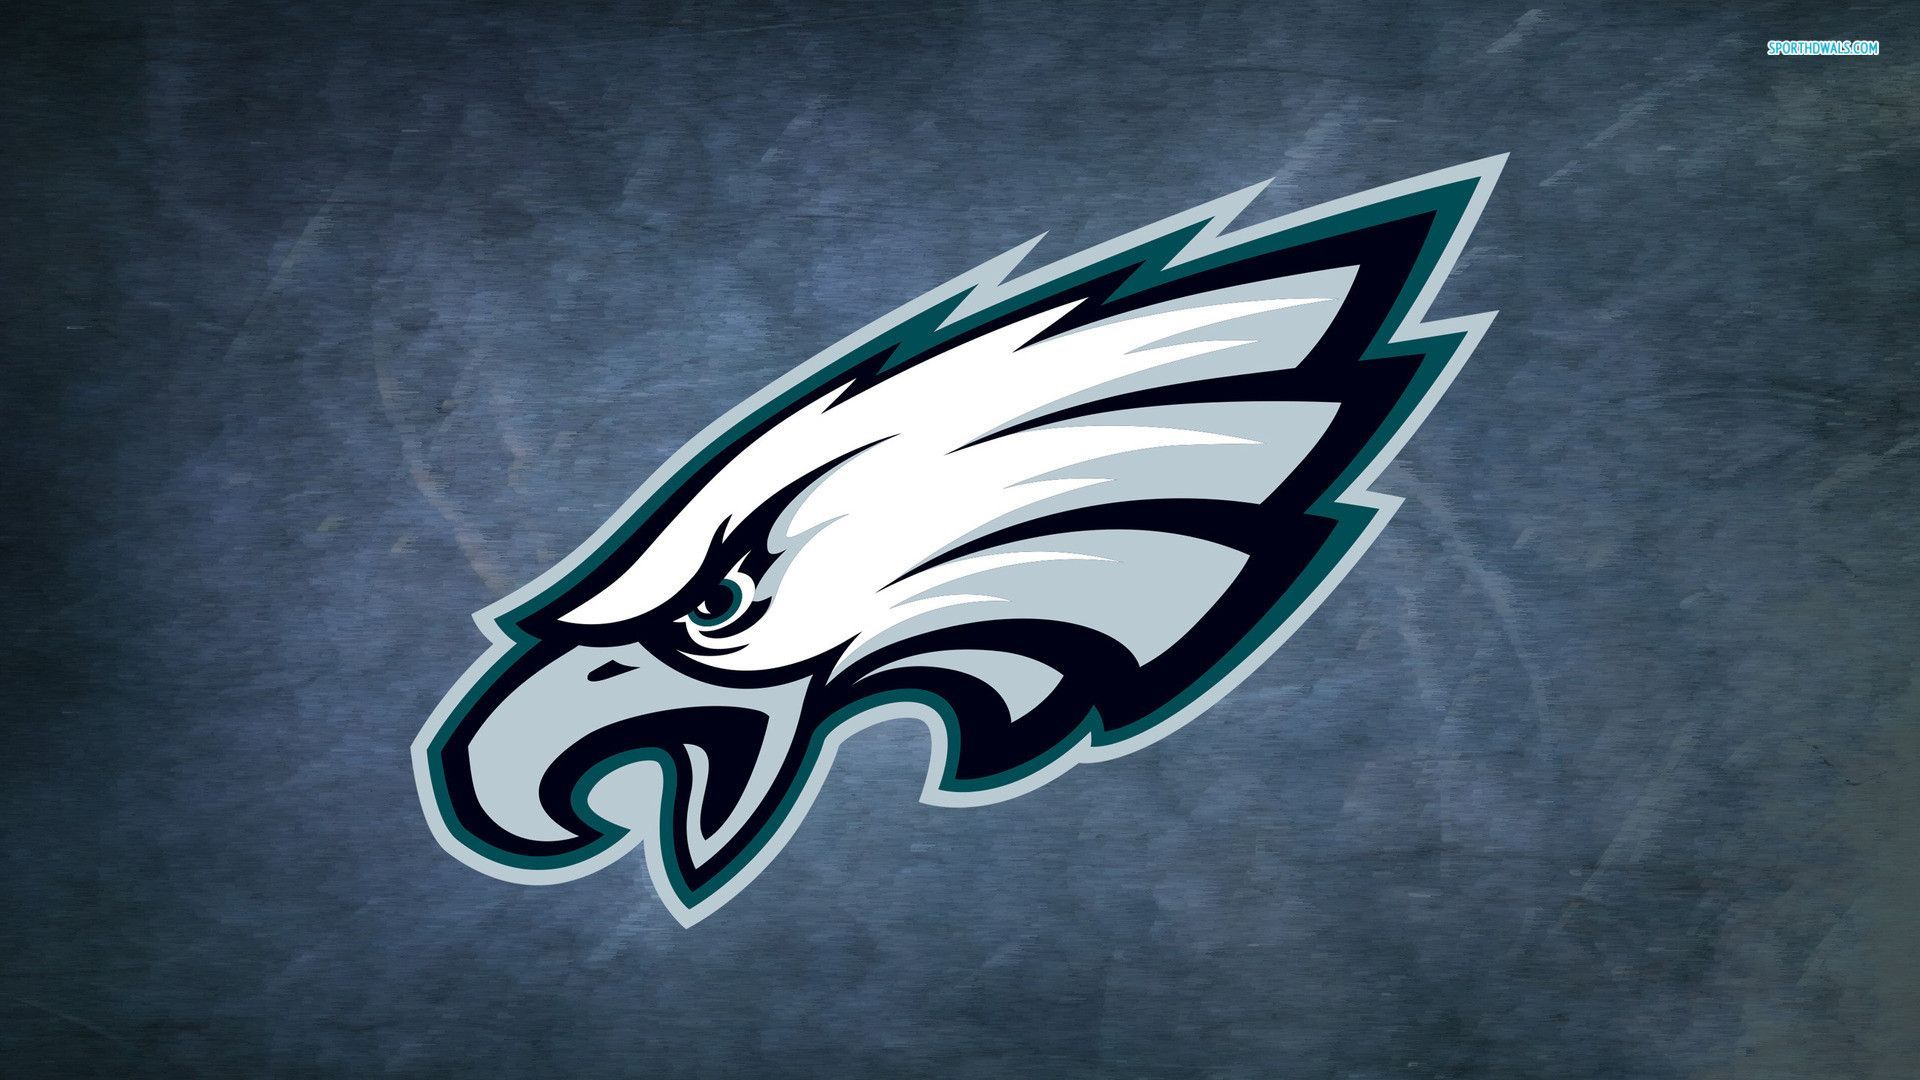 Philadelphia Eagles Wallpapers PC iPhone Android HD